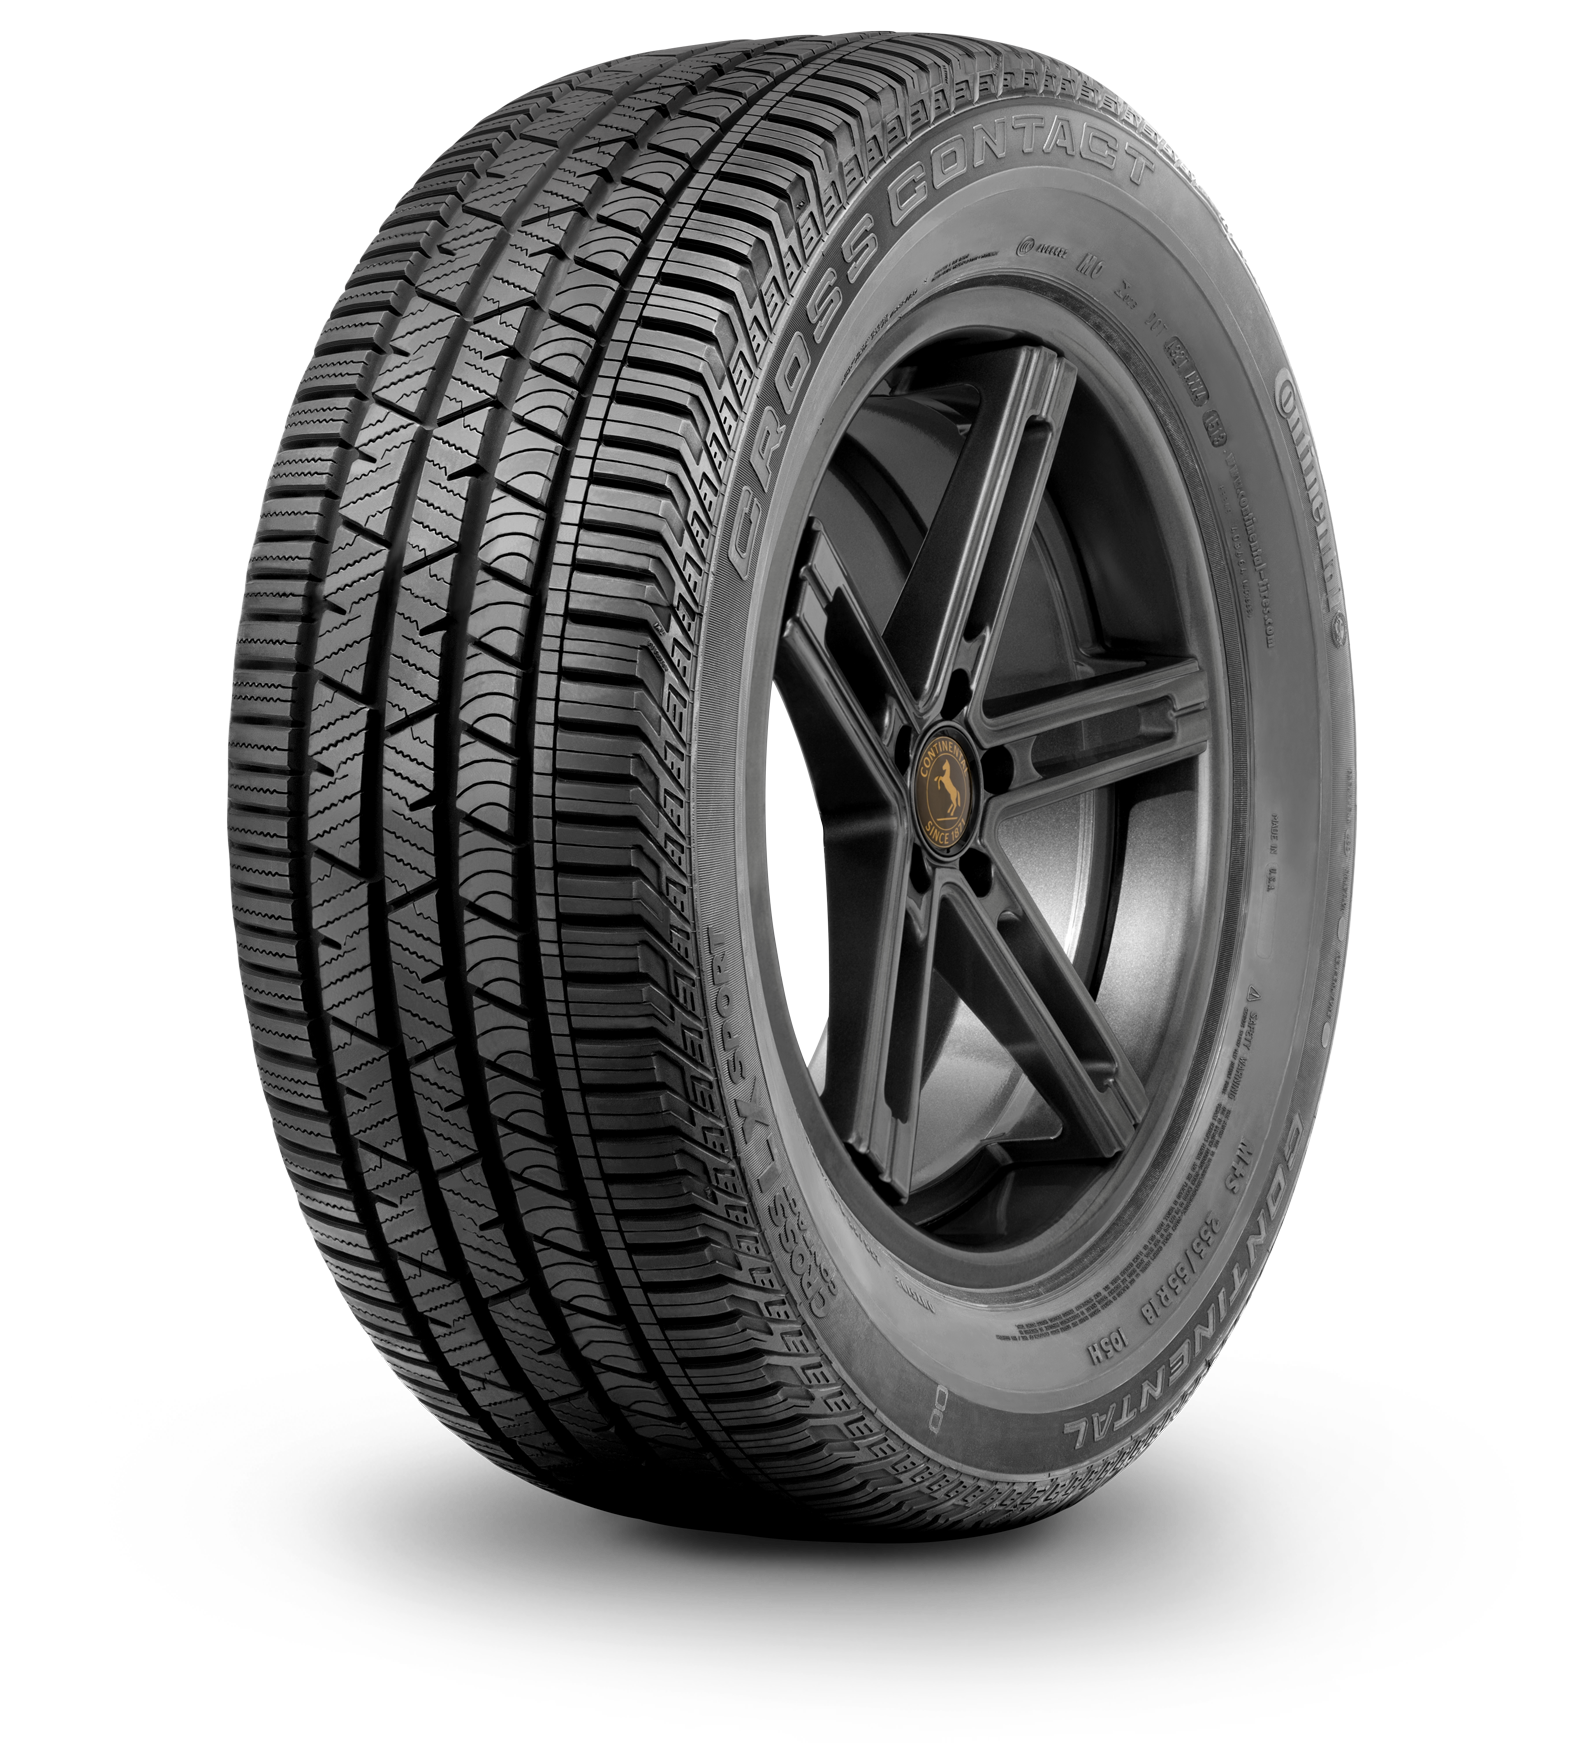 Gomme Nuove Continental 235/65 R17 108V CONTICROSSCONTACT LX Sp XL pneumatici nuovi Estivo